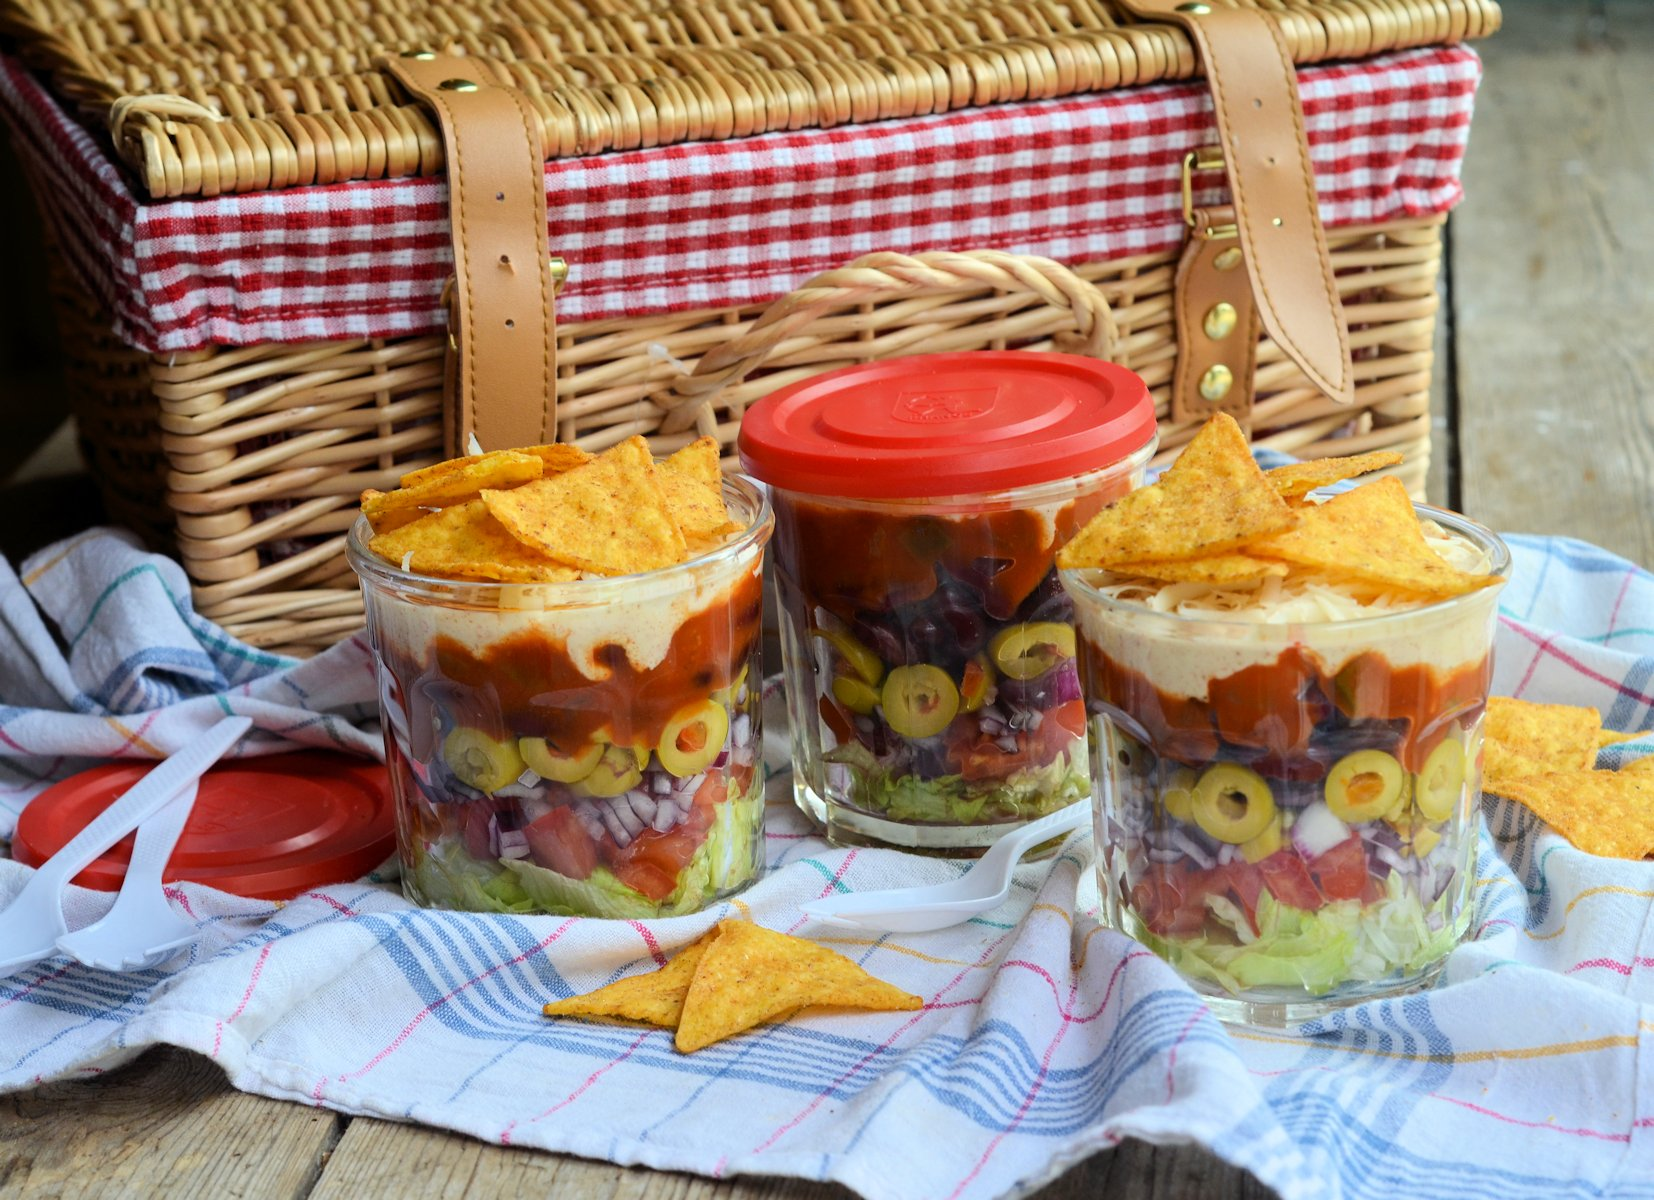 Picnics Lunch Box And Barbecue Salad Idea Layered Picnic Salads